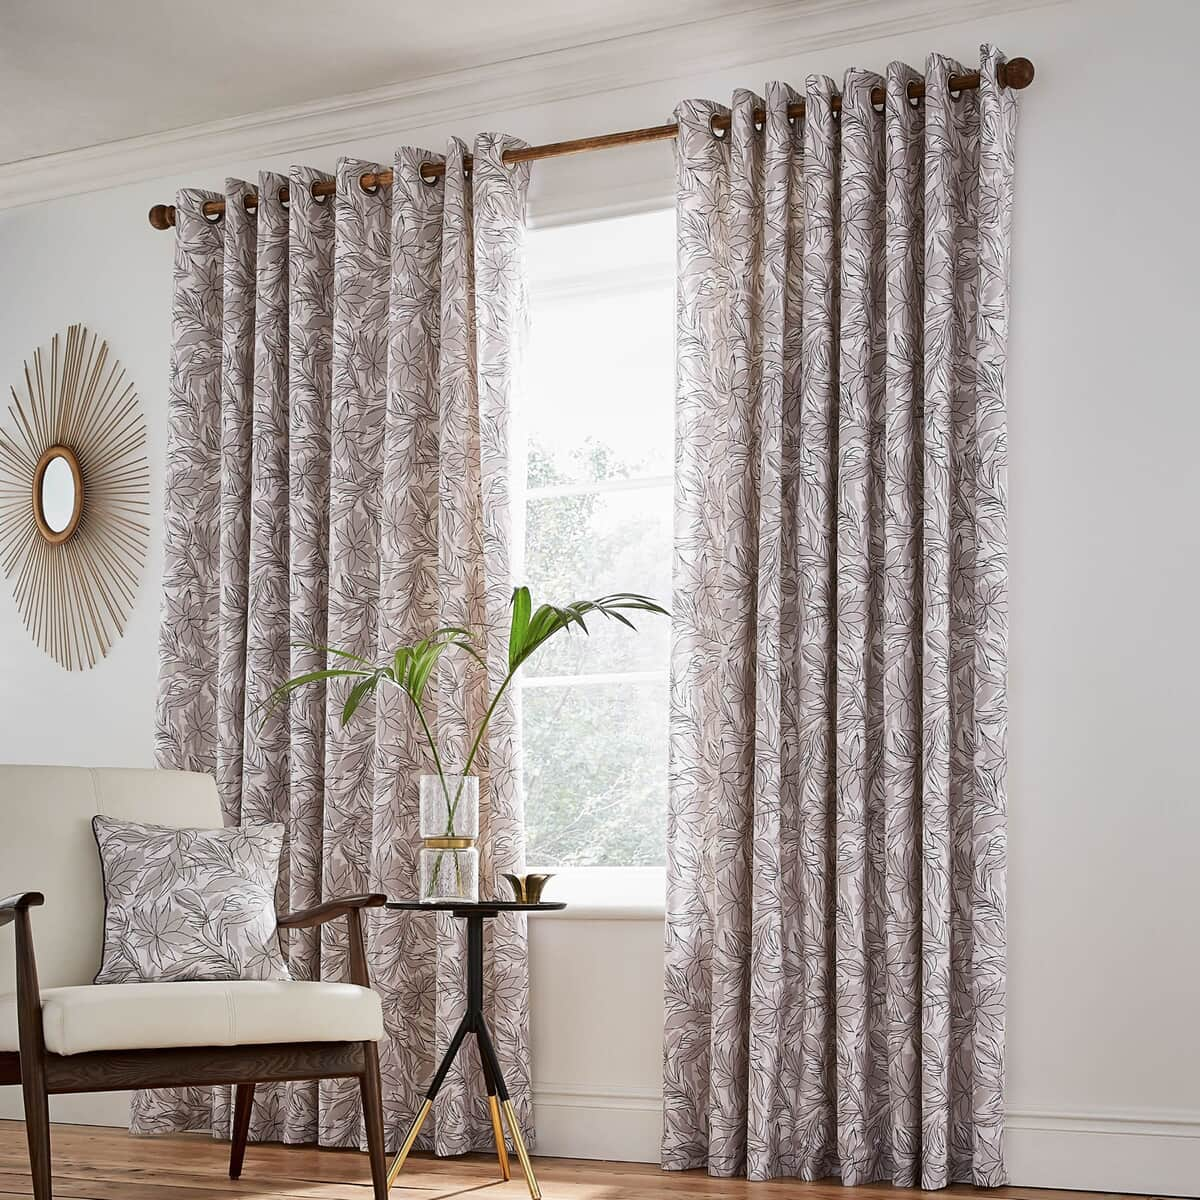 Helena Springfield Oasis Linen Curtains large